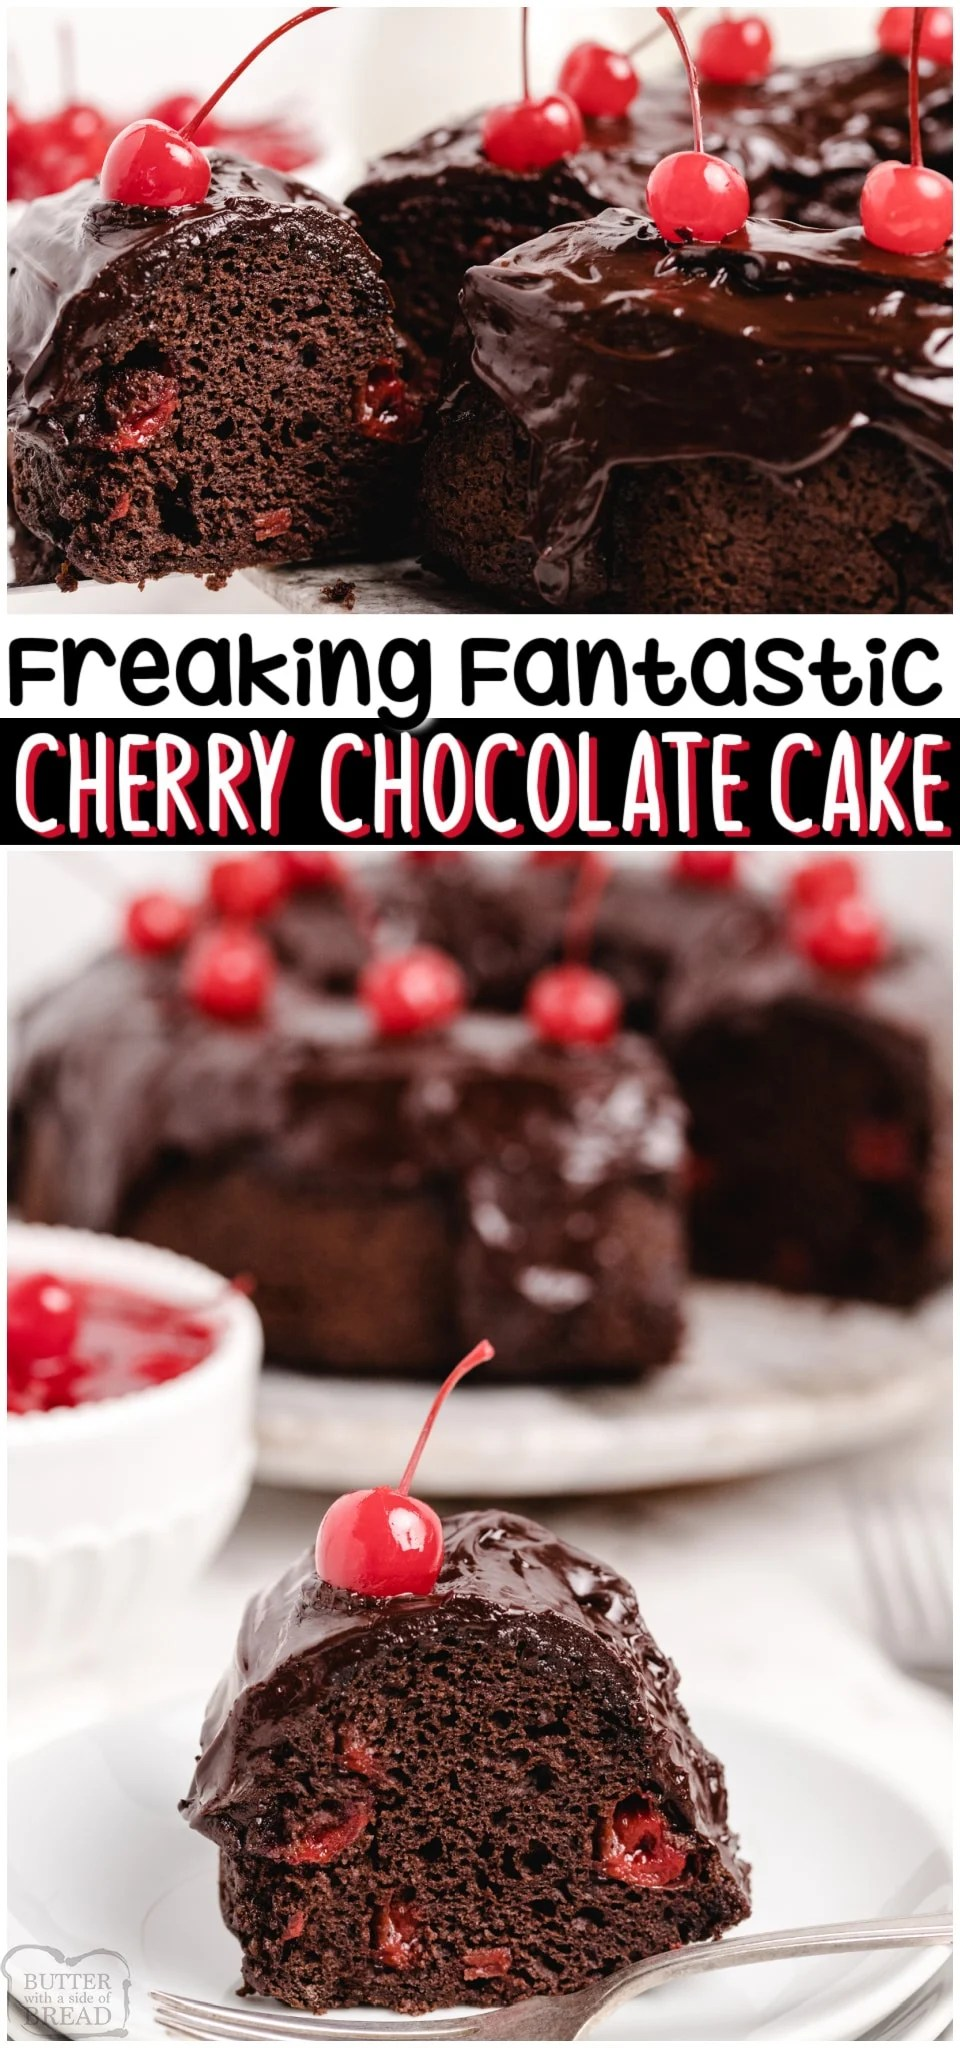 Family Favorite Chocolate Cherry Cake with only 3 ingredients: a cake mix, cherry pie filling & eggs! You're going to love this moist & delicious chocolate cherry cake recipe!#cake #chocolatecake #cherrycake #cherry #baking #dessert #easyrecipe from BUTTER WITH A SIDE OF BREAD